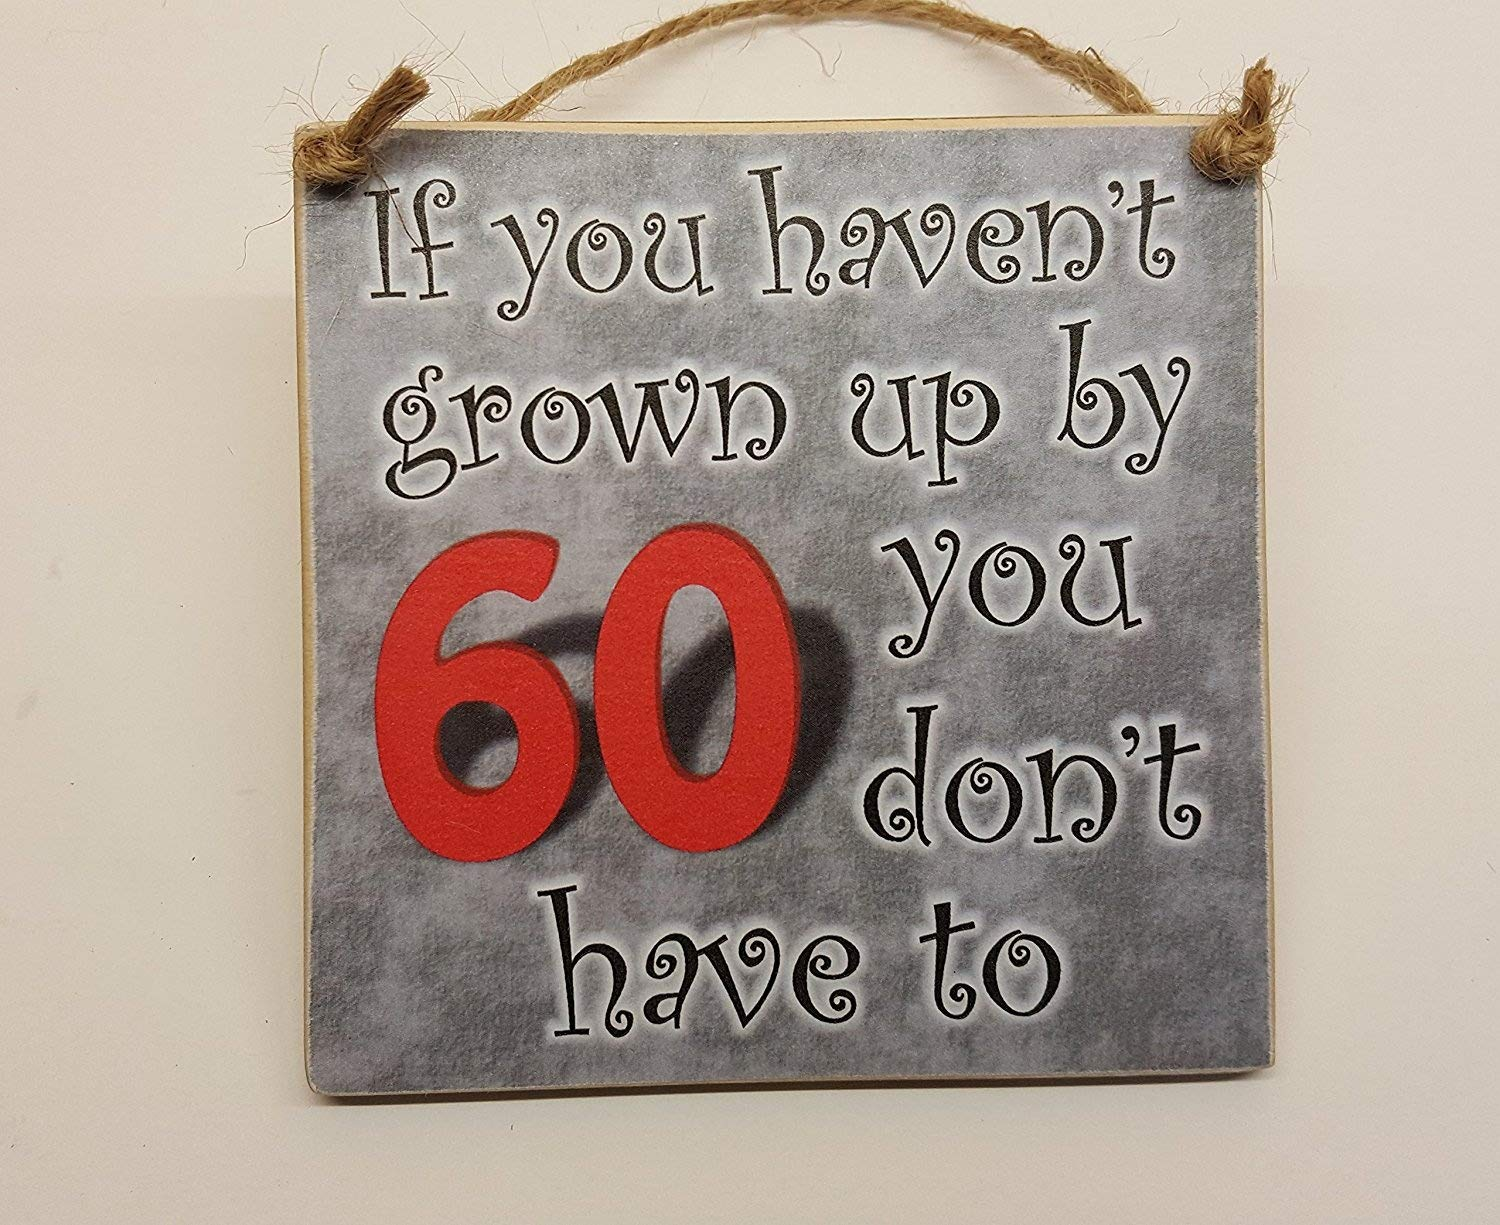 HmHome Hanging Plaque If You Havent Grown Up By 60 Dont Have ToWooden 60th Birthday Gift For Men Women Dad Sister Brother Friend Amazoncouk